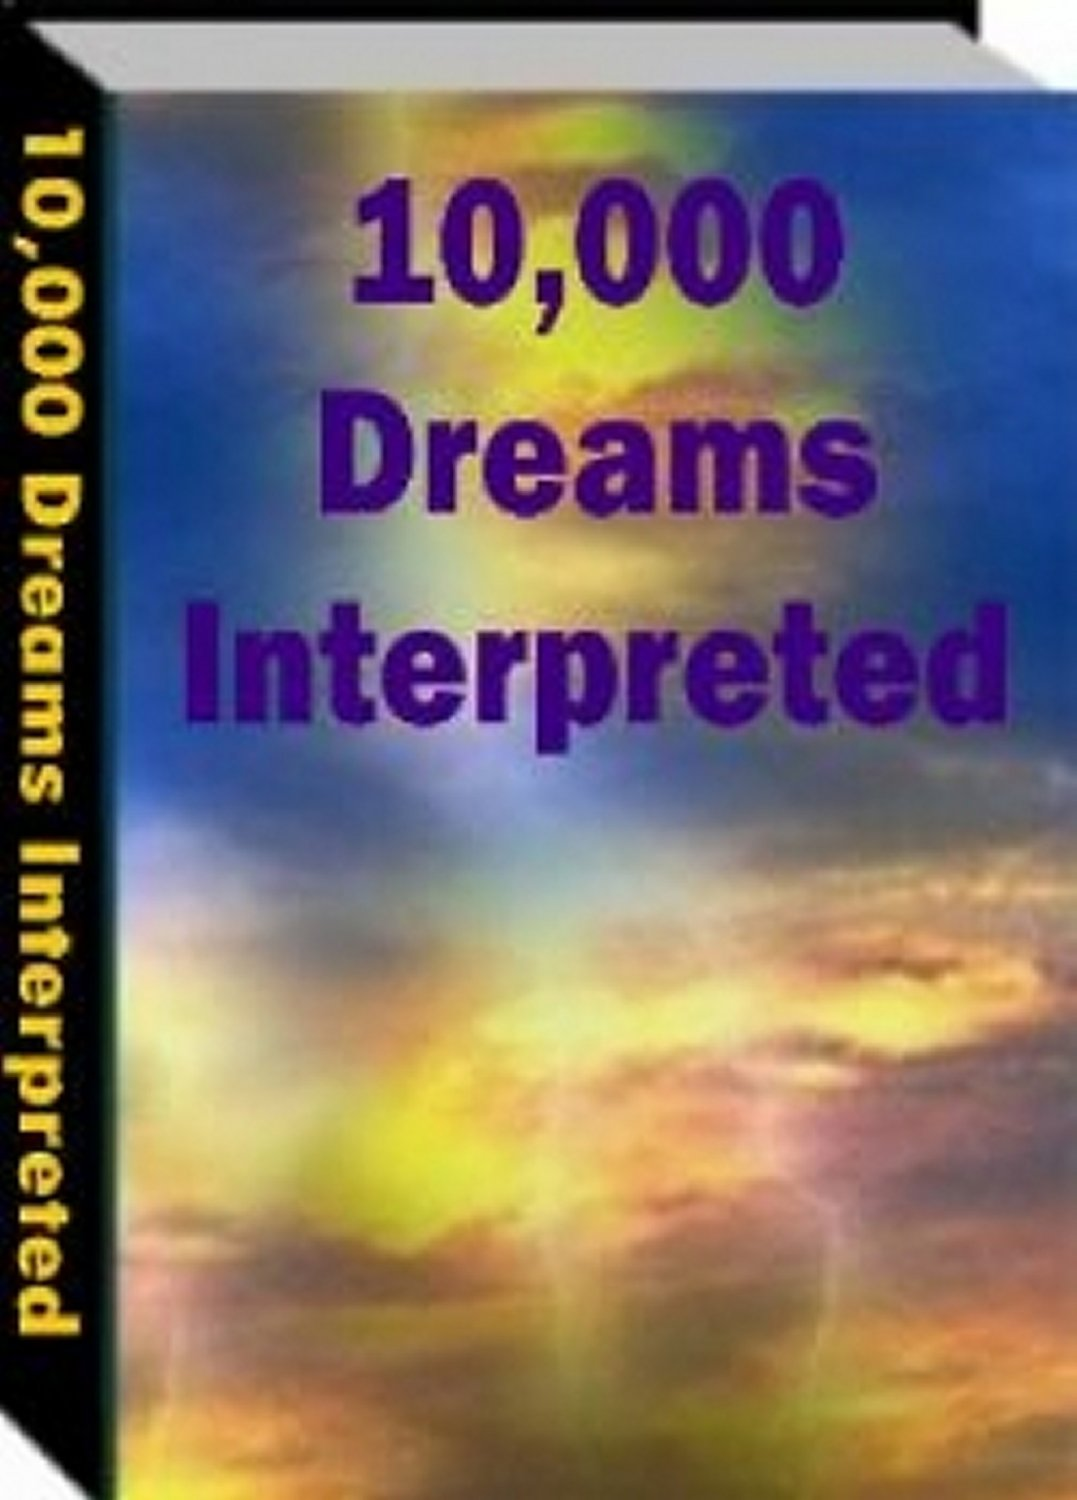 10,000 Dreams Interpreted PDF ebook  xpress2shop